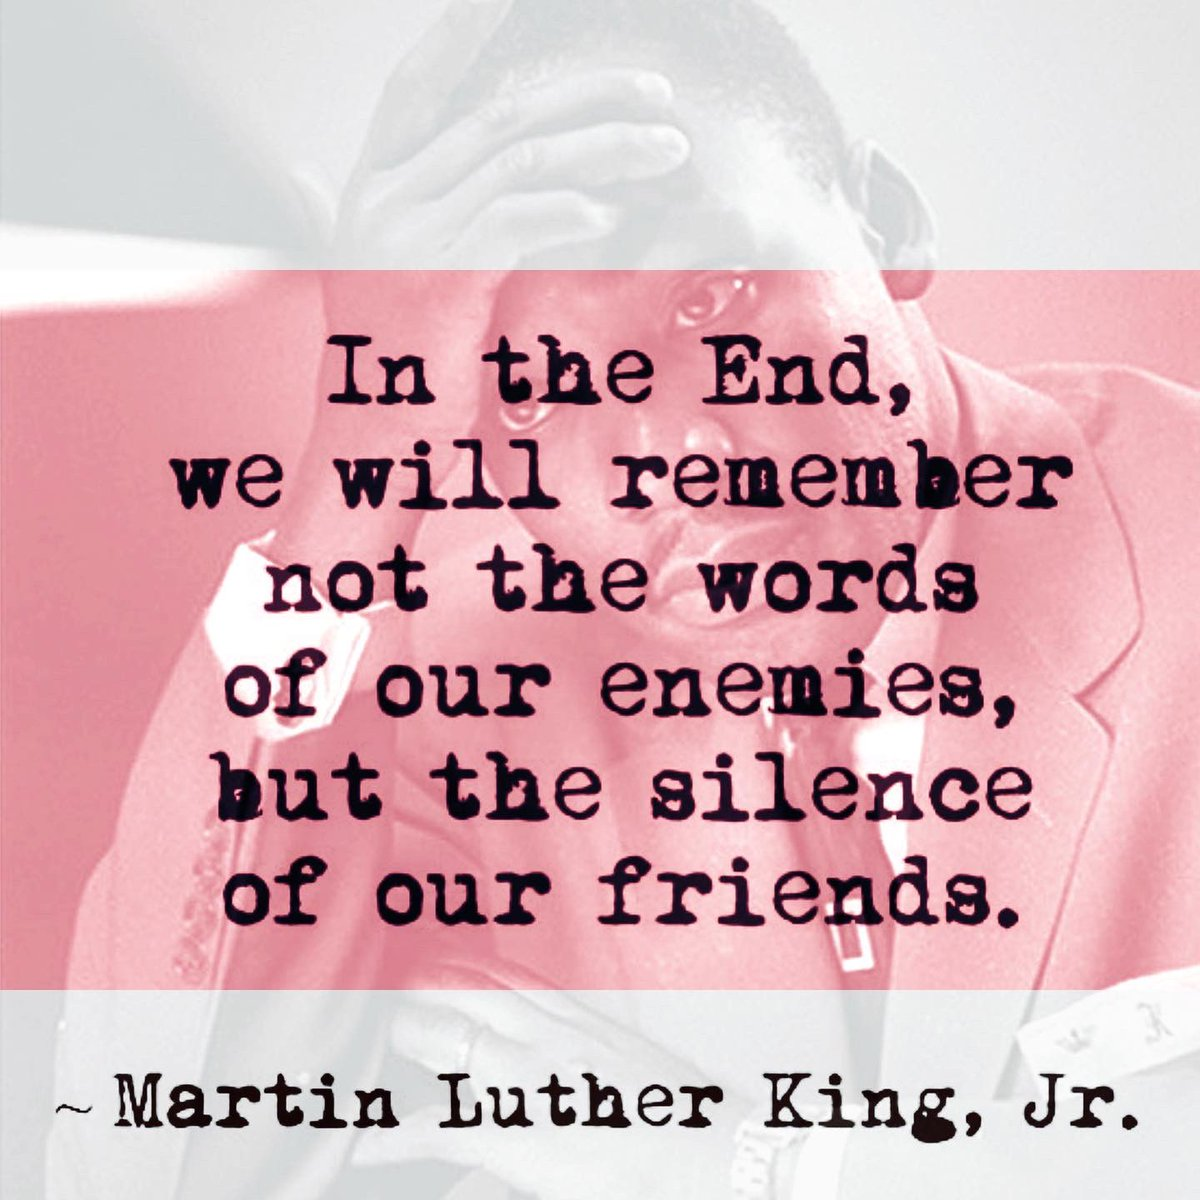 I thought his expression matched his words so well... 2021 is not the year to remain silent, we have had too much silence.  1st pic mixed repost of image from @GabrielleDennis with type from @sophieandlili 2nd pic repost from @TheKingCenter with added quote. #MLK #MLKday